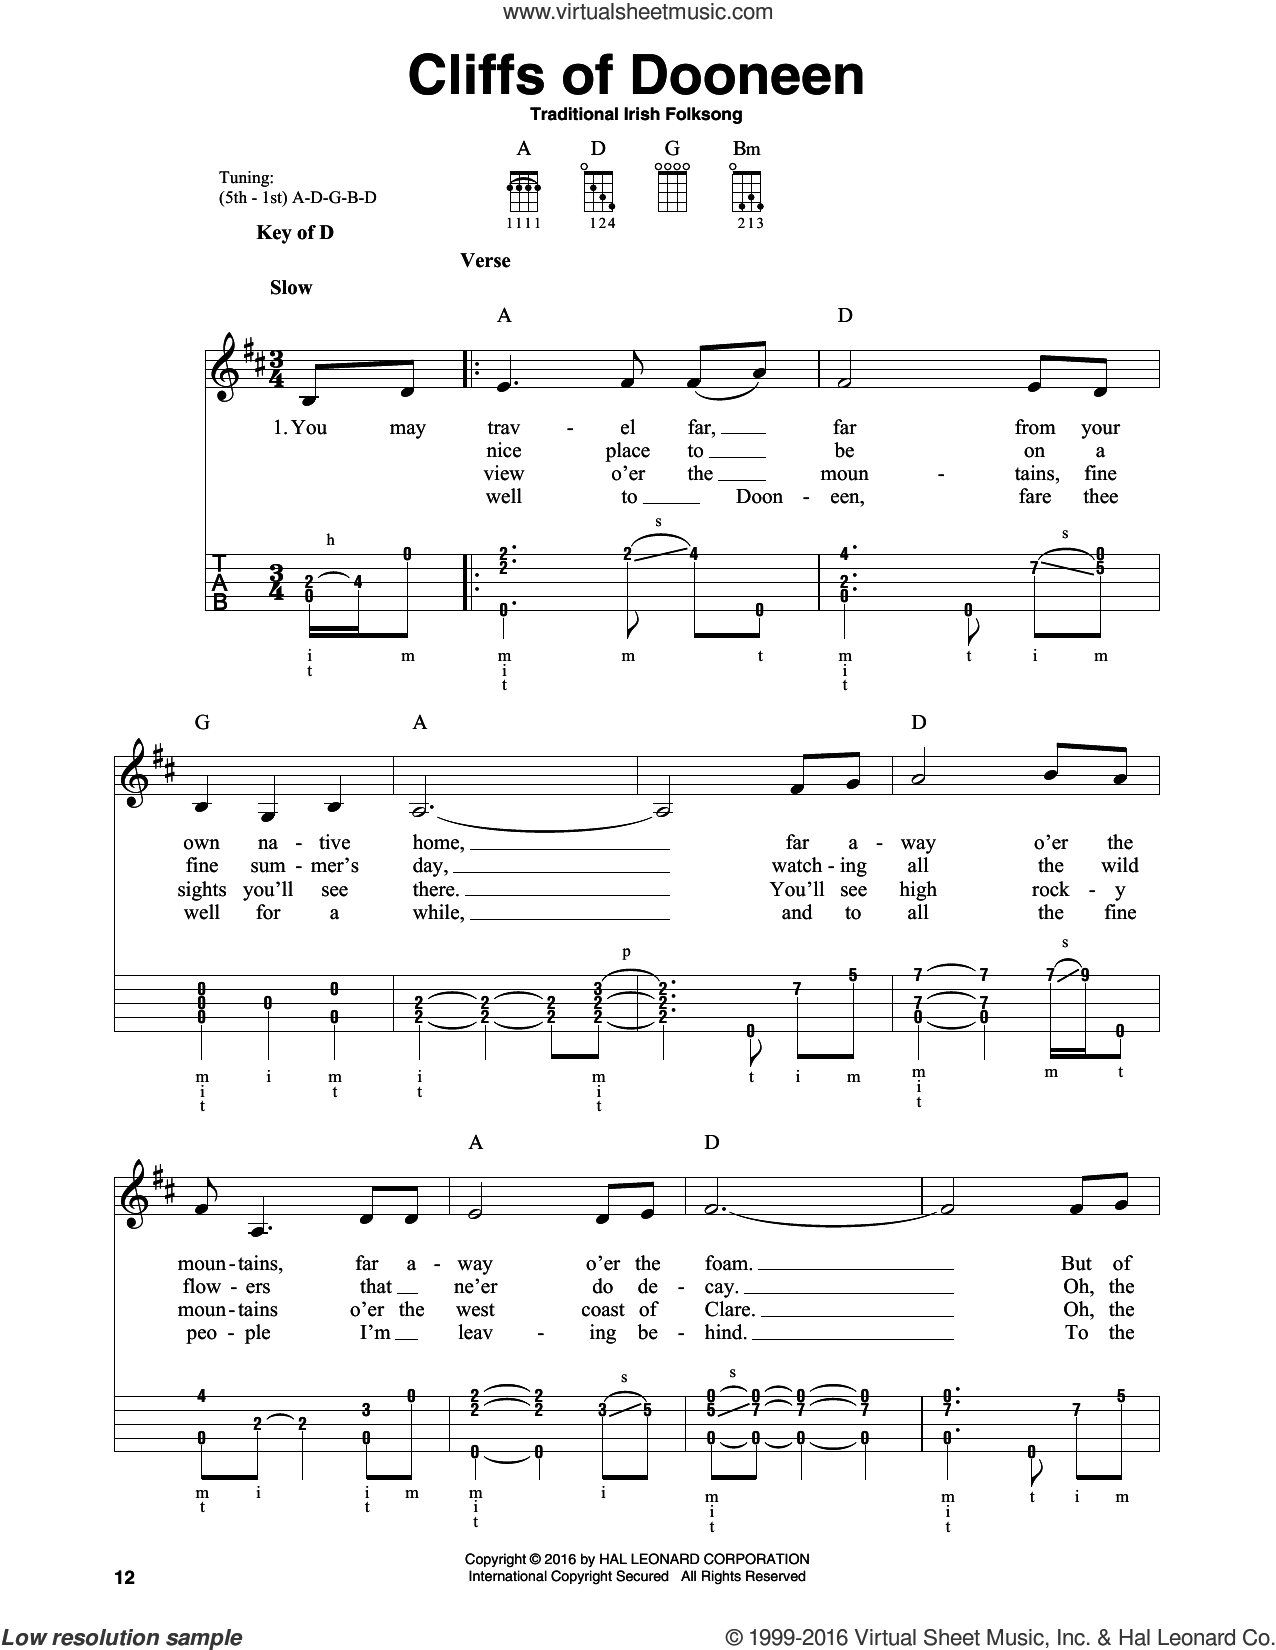 Cliffs Of Doneen sheet music for banjo solo. Score Image Preview.